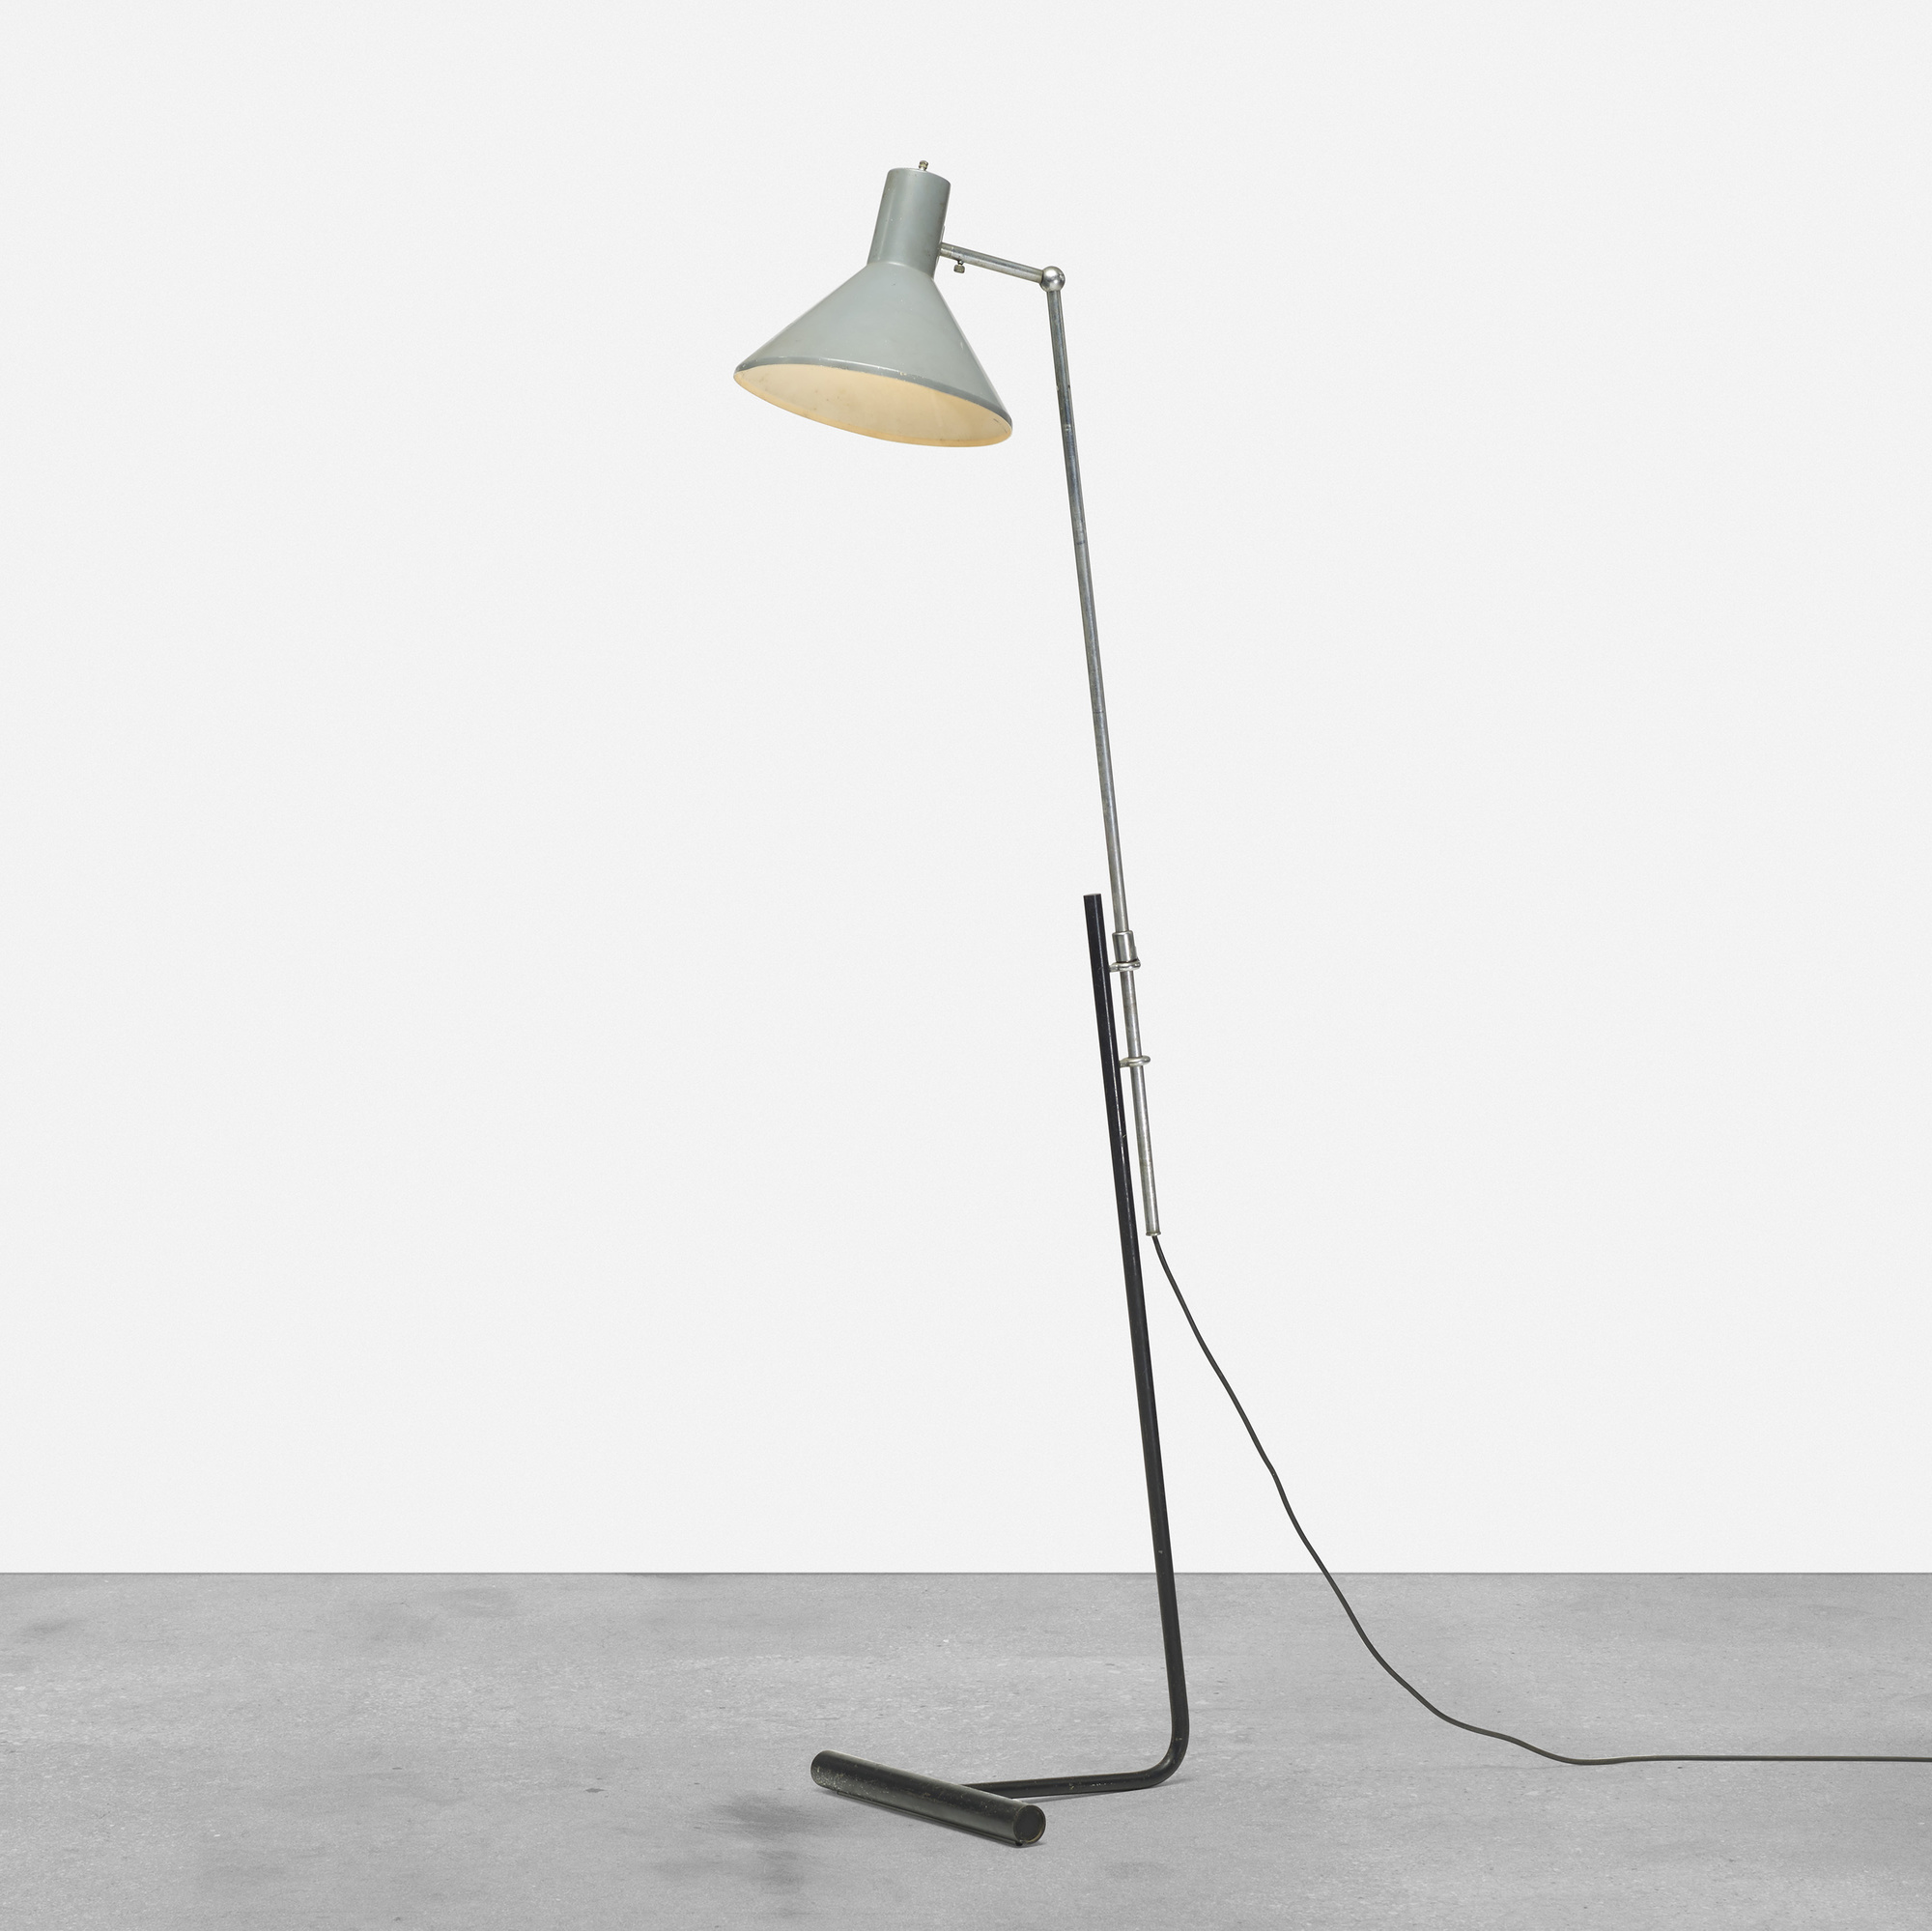 151 Gino Sarfatti Floor Lamp Model 1045n Design 10 December